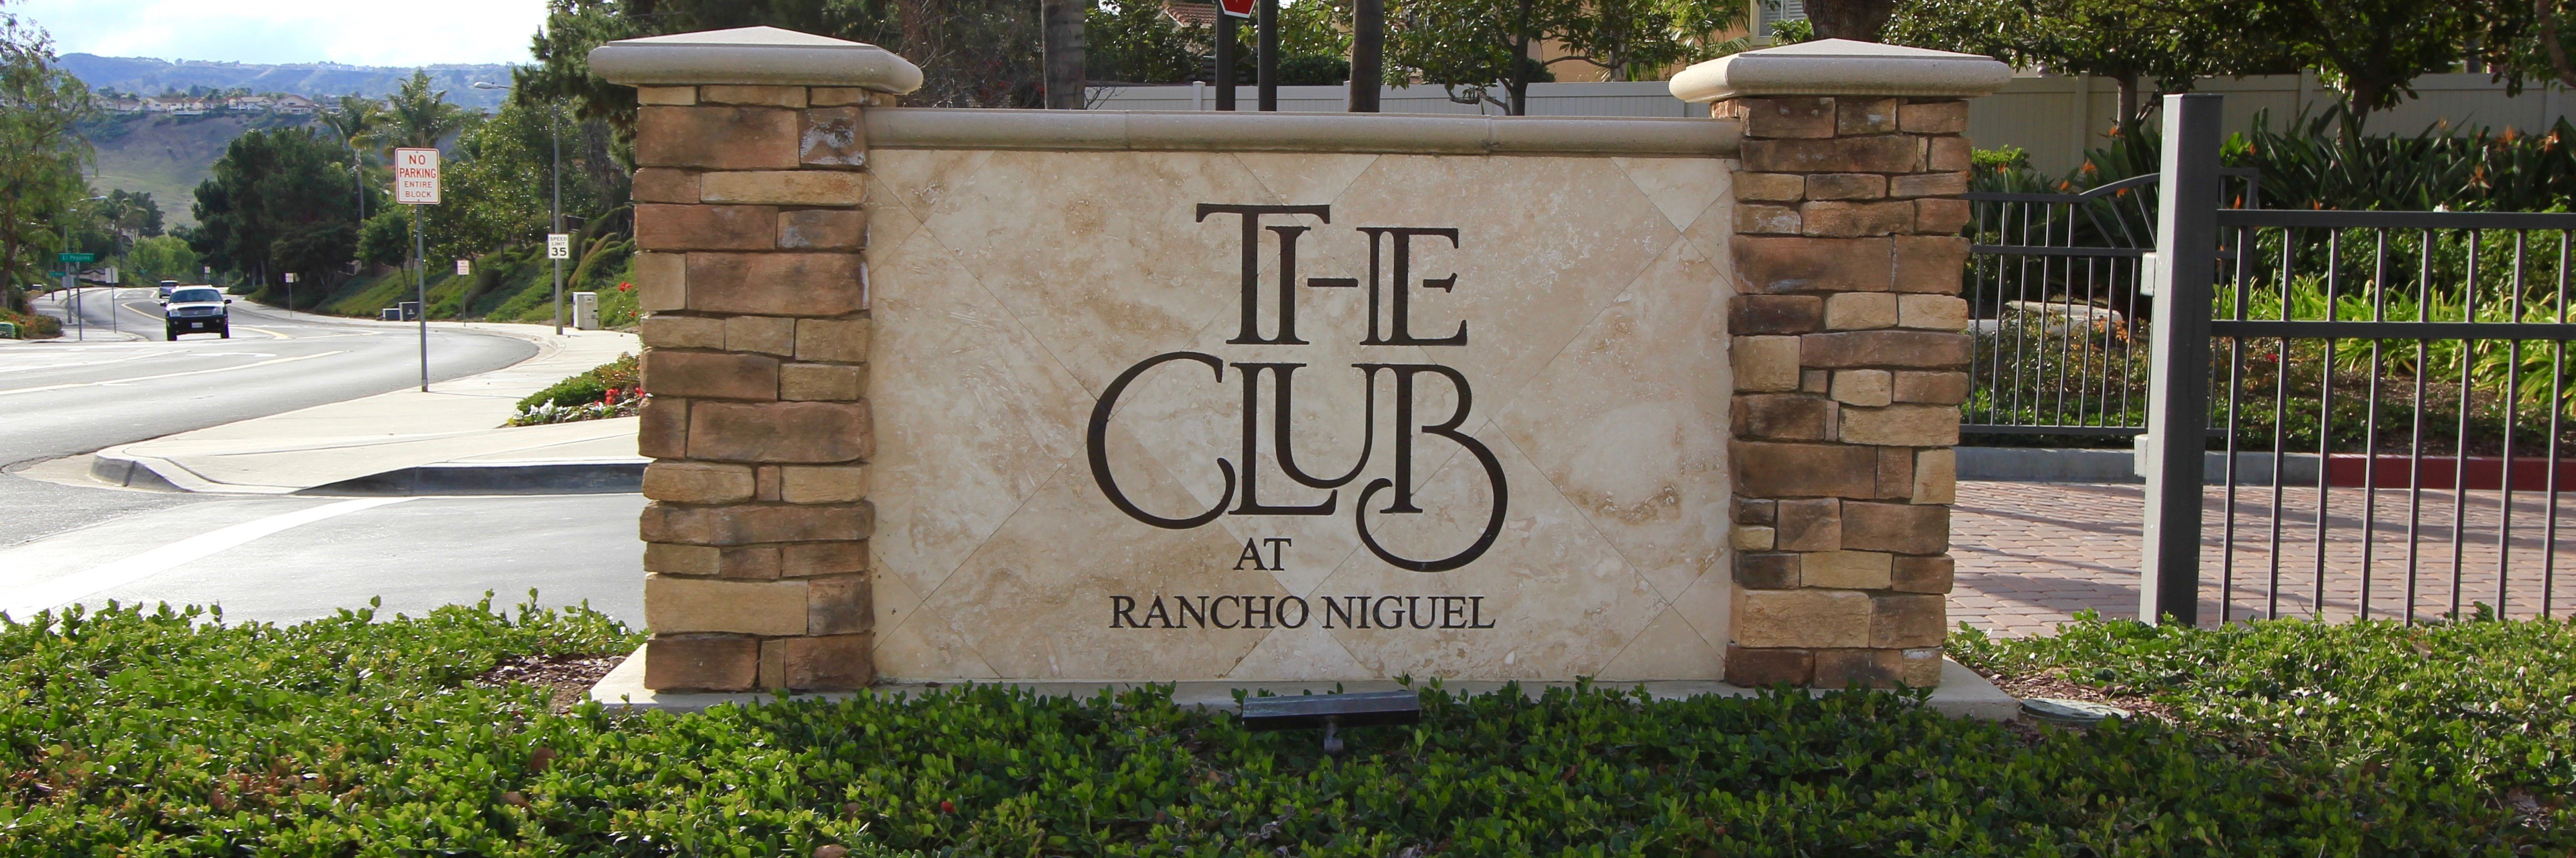 Rancho Niguel is a neighborhood of homes located in Laguna Niguel California